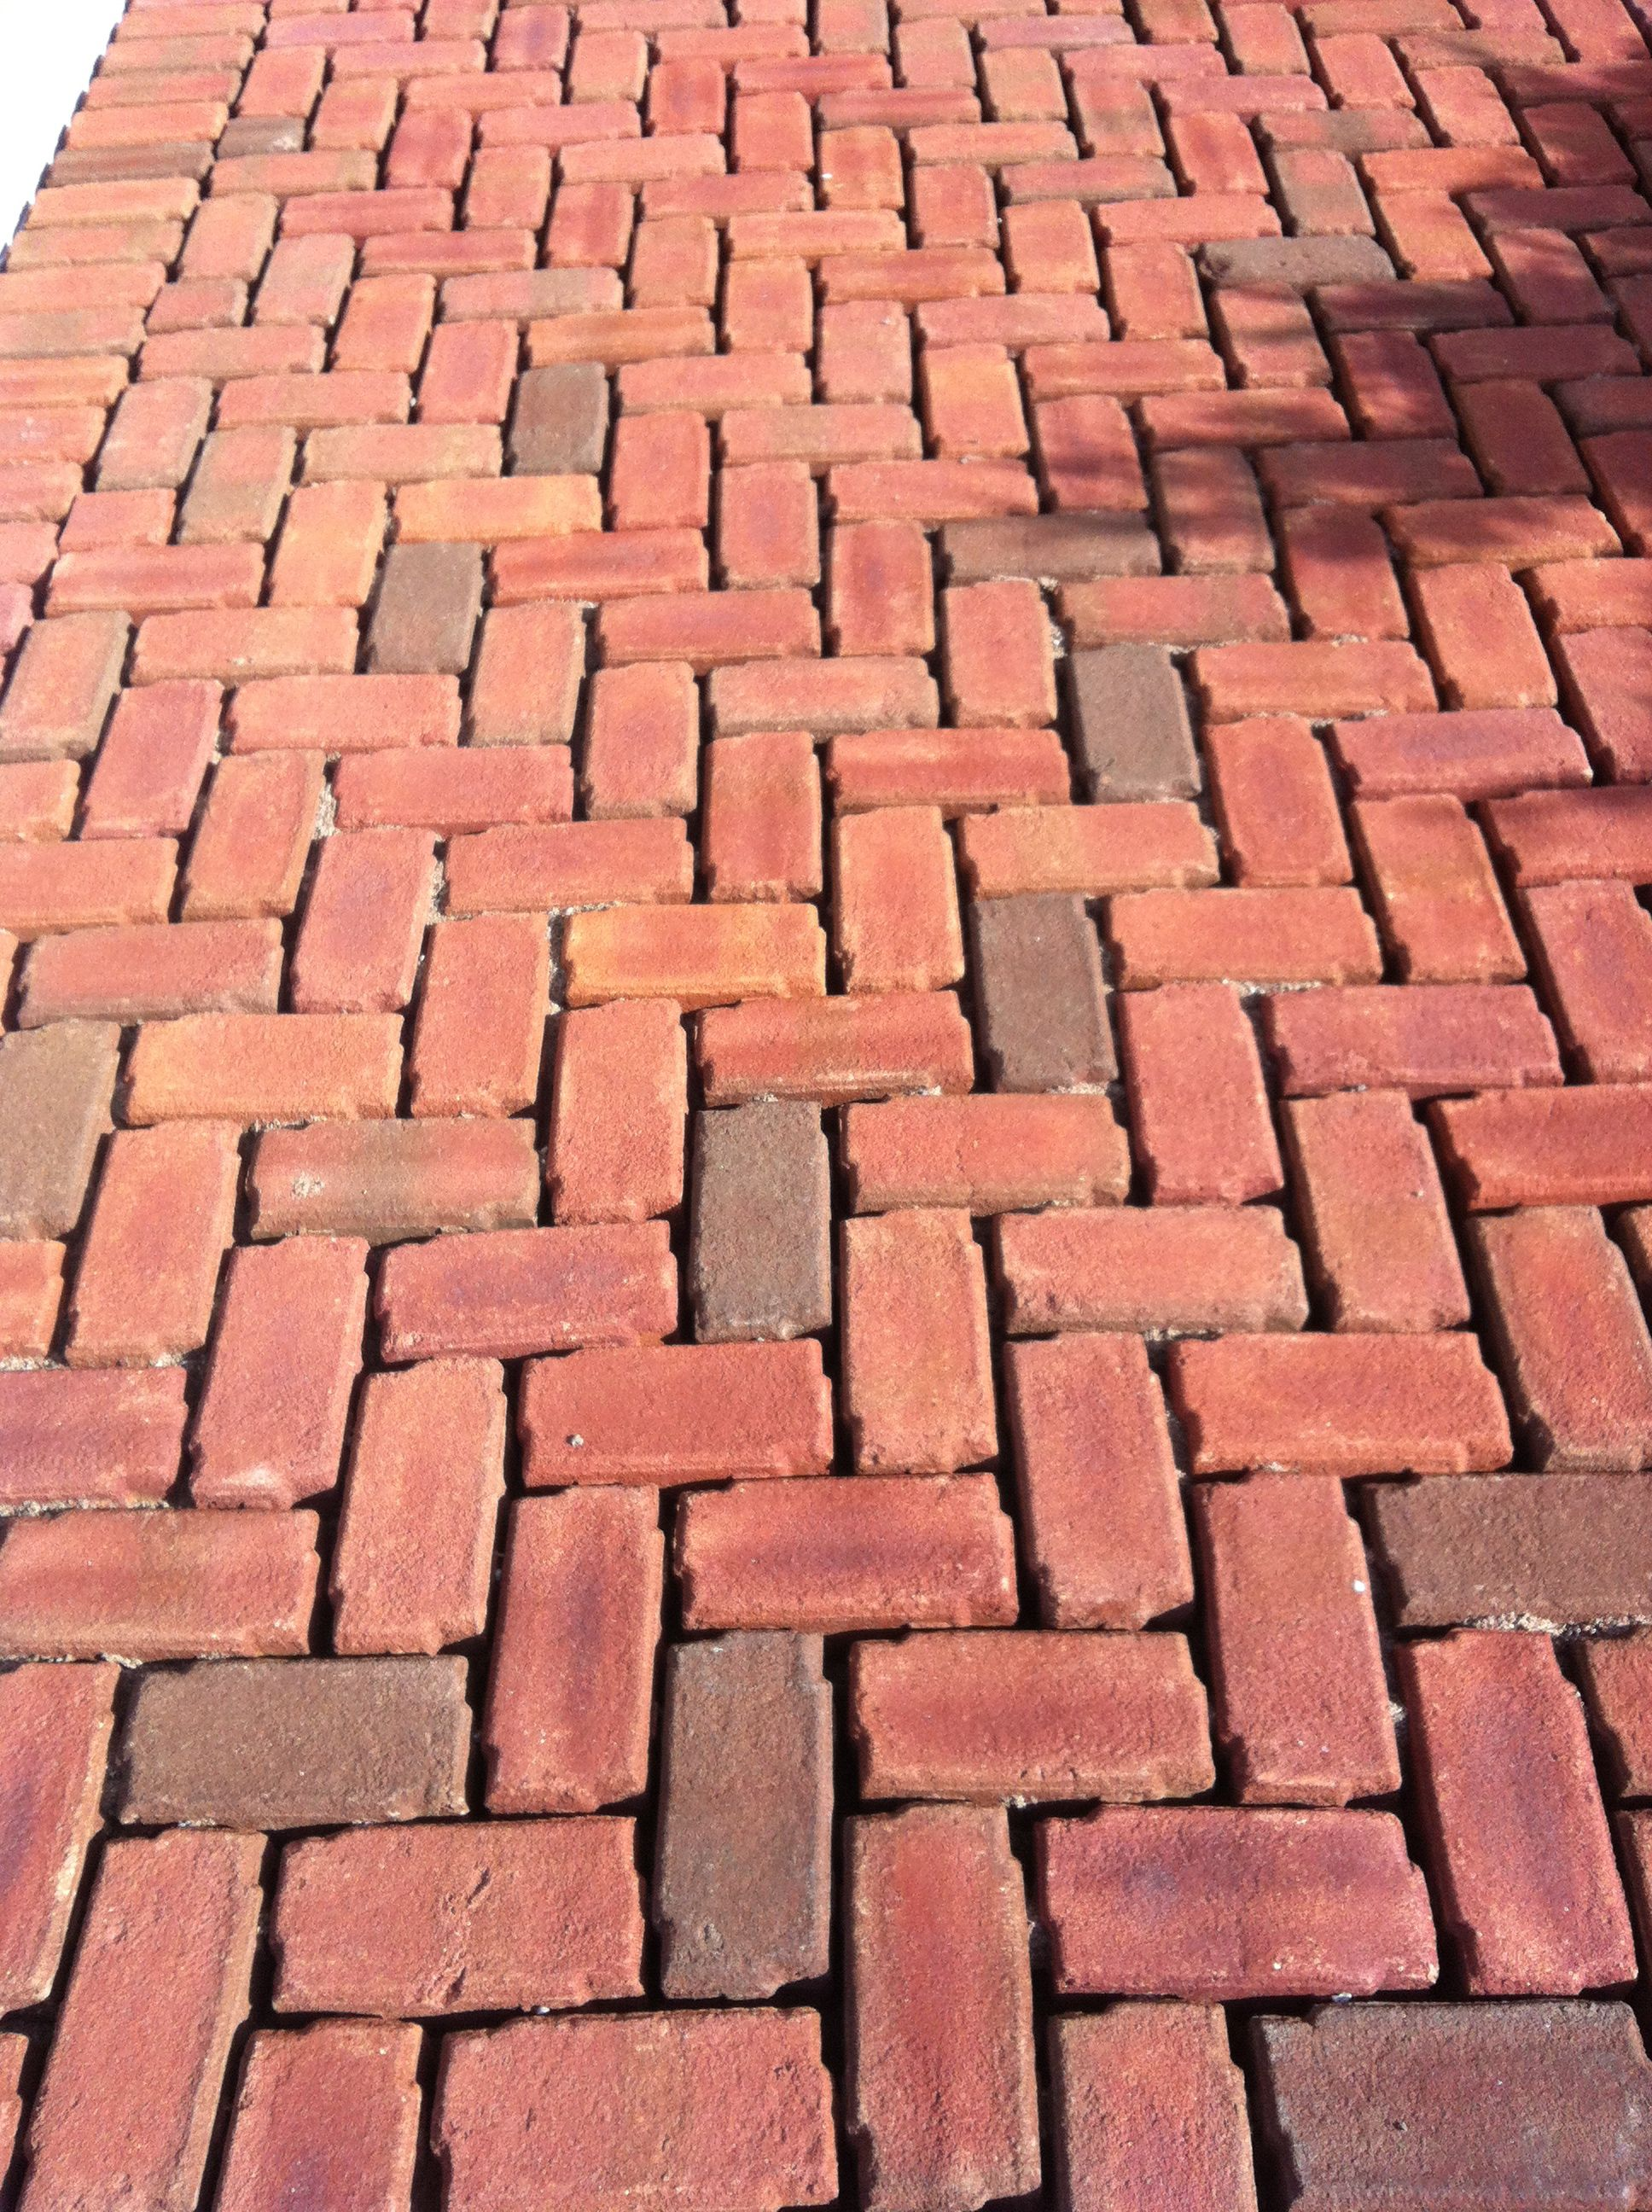 Clay Brick Pavers Belden's New Aqua Bric Permeable Paver Is A Clay Brick System That